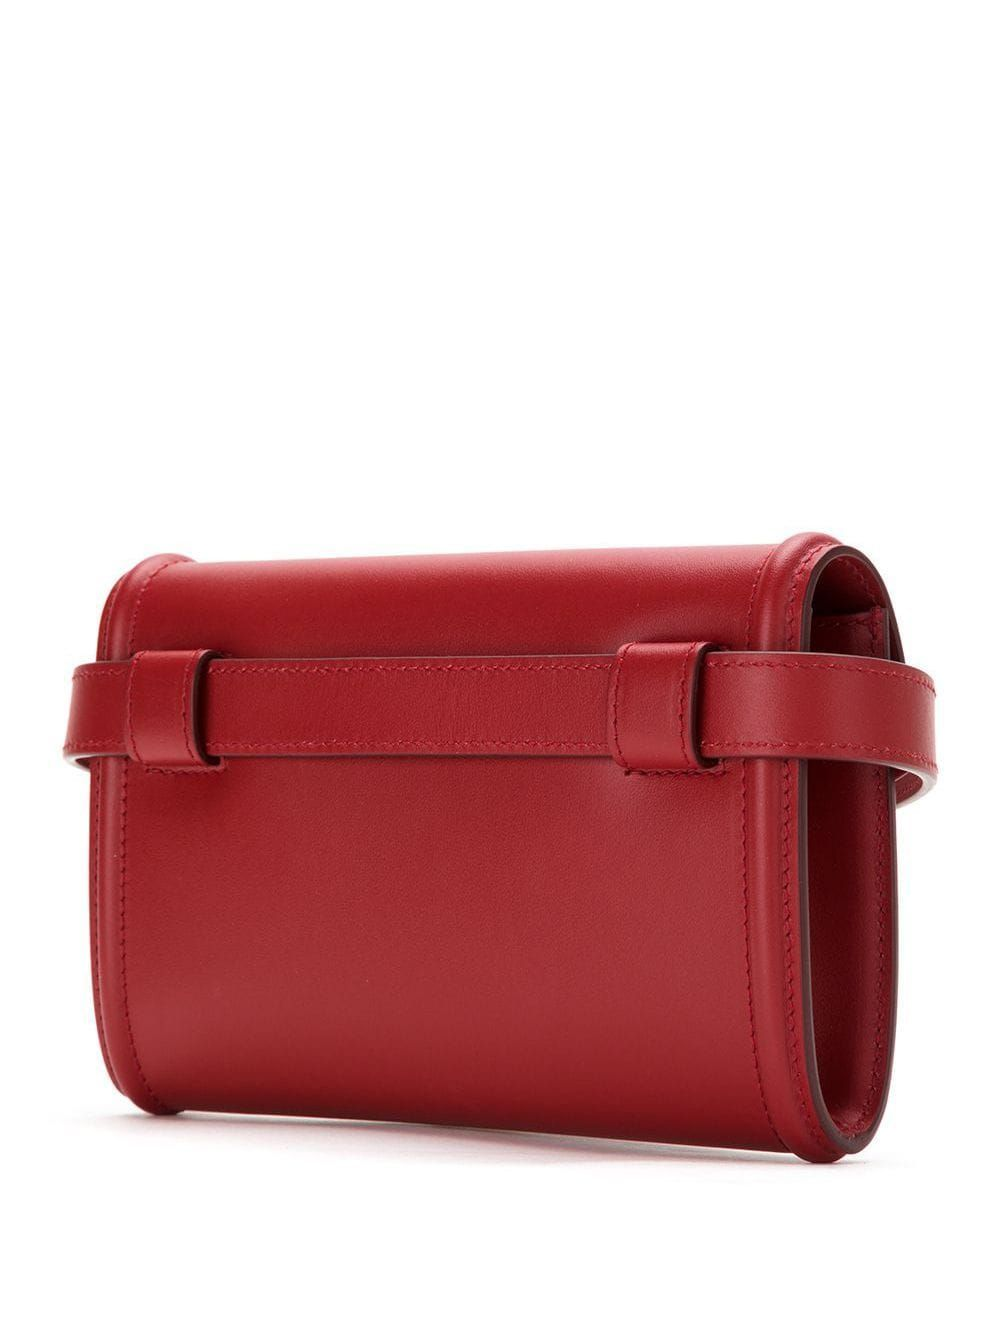 DOLCE E GABBANA WOMEN'S BB6706AV89387124 RED LEATHER BELT BAG